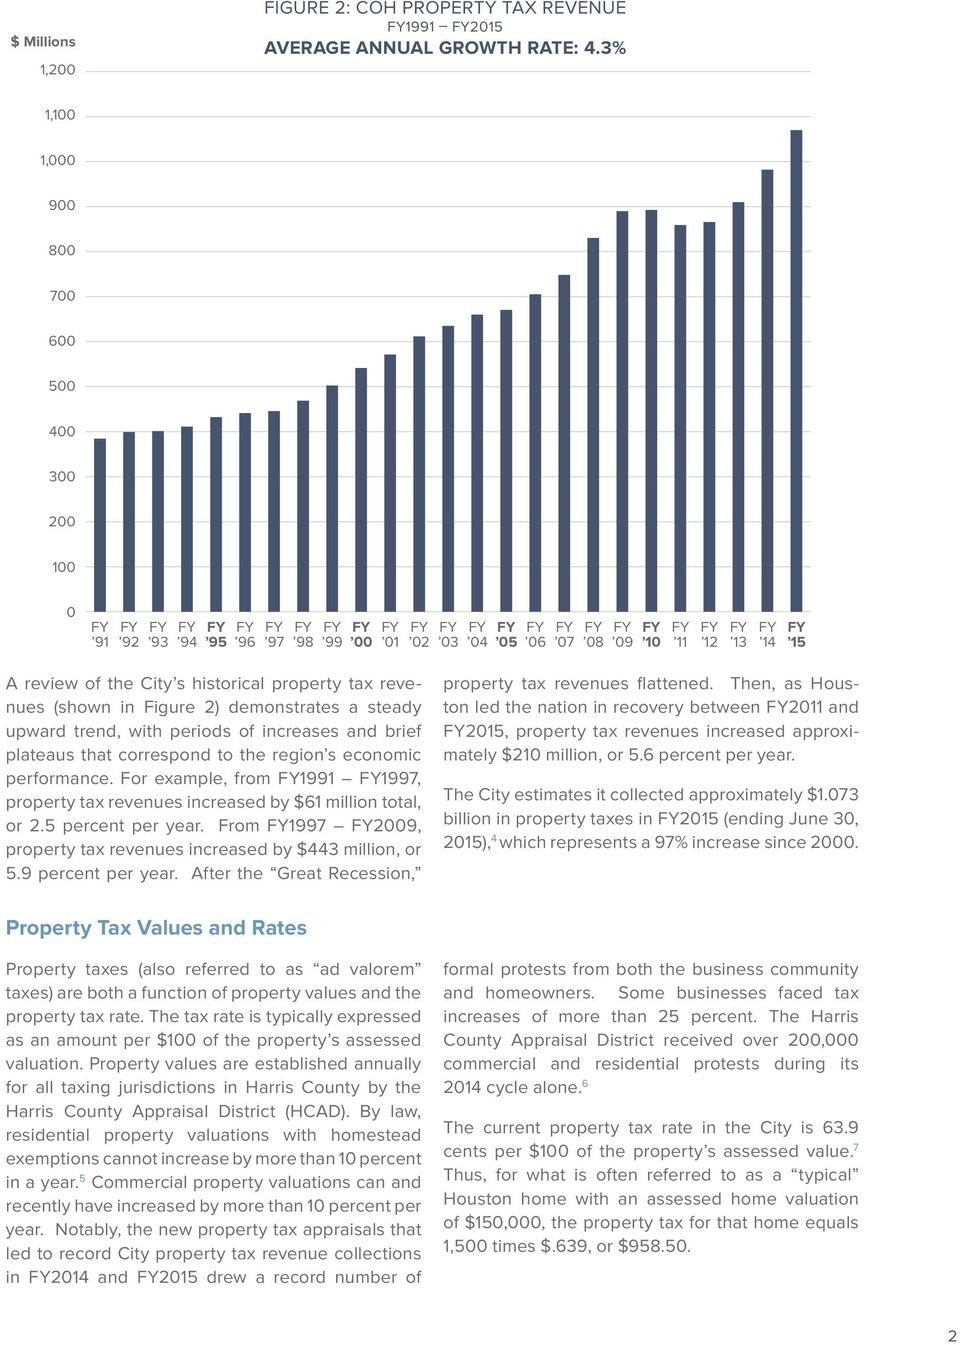 15 A review of the City s historical property tax revenues (shown in Figure 2) demonstrates a steady upward trend, with periods of increases and brief plateaus that correspond to the region s